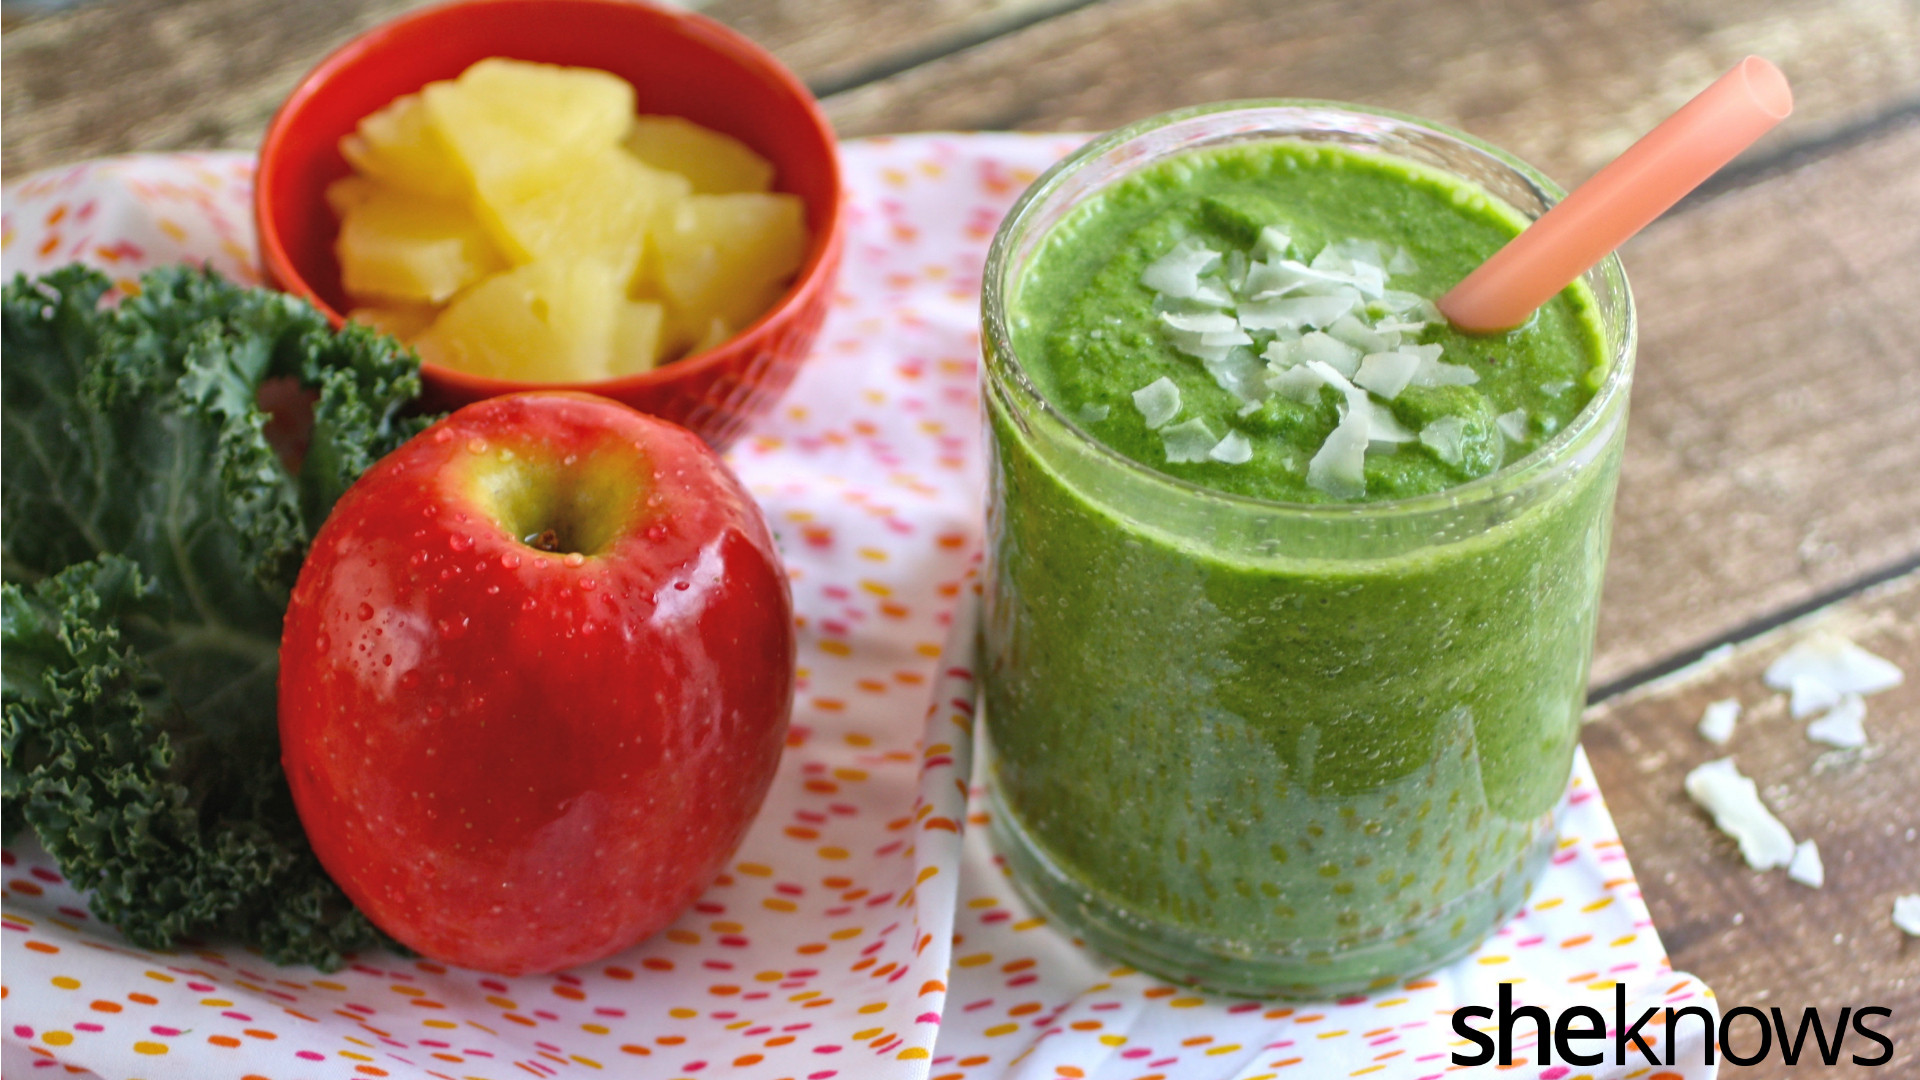 Best Healthy Smoothies  These Green Smoothie Recipes Have the Magical Power to